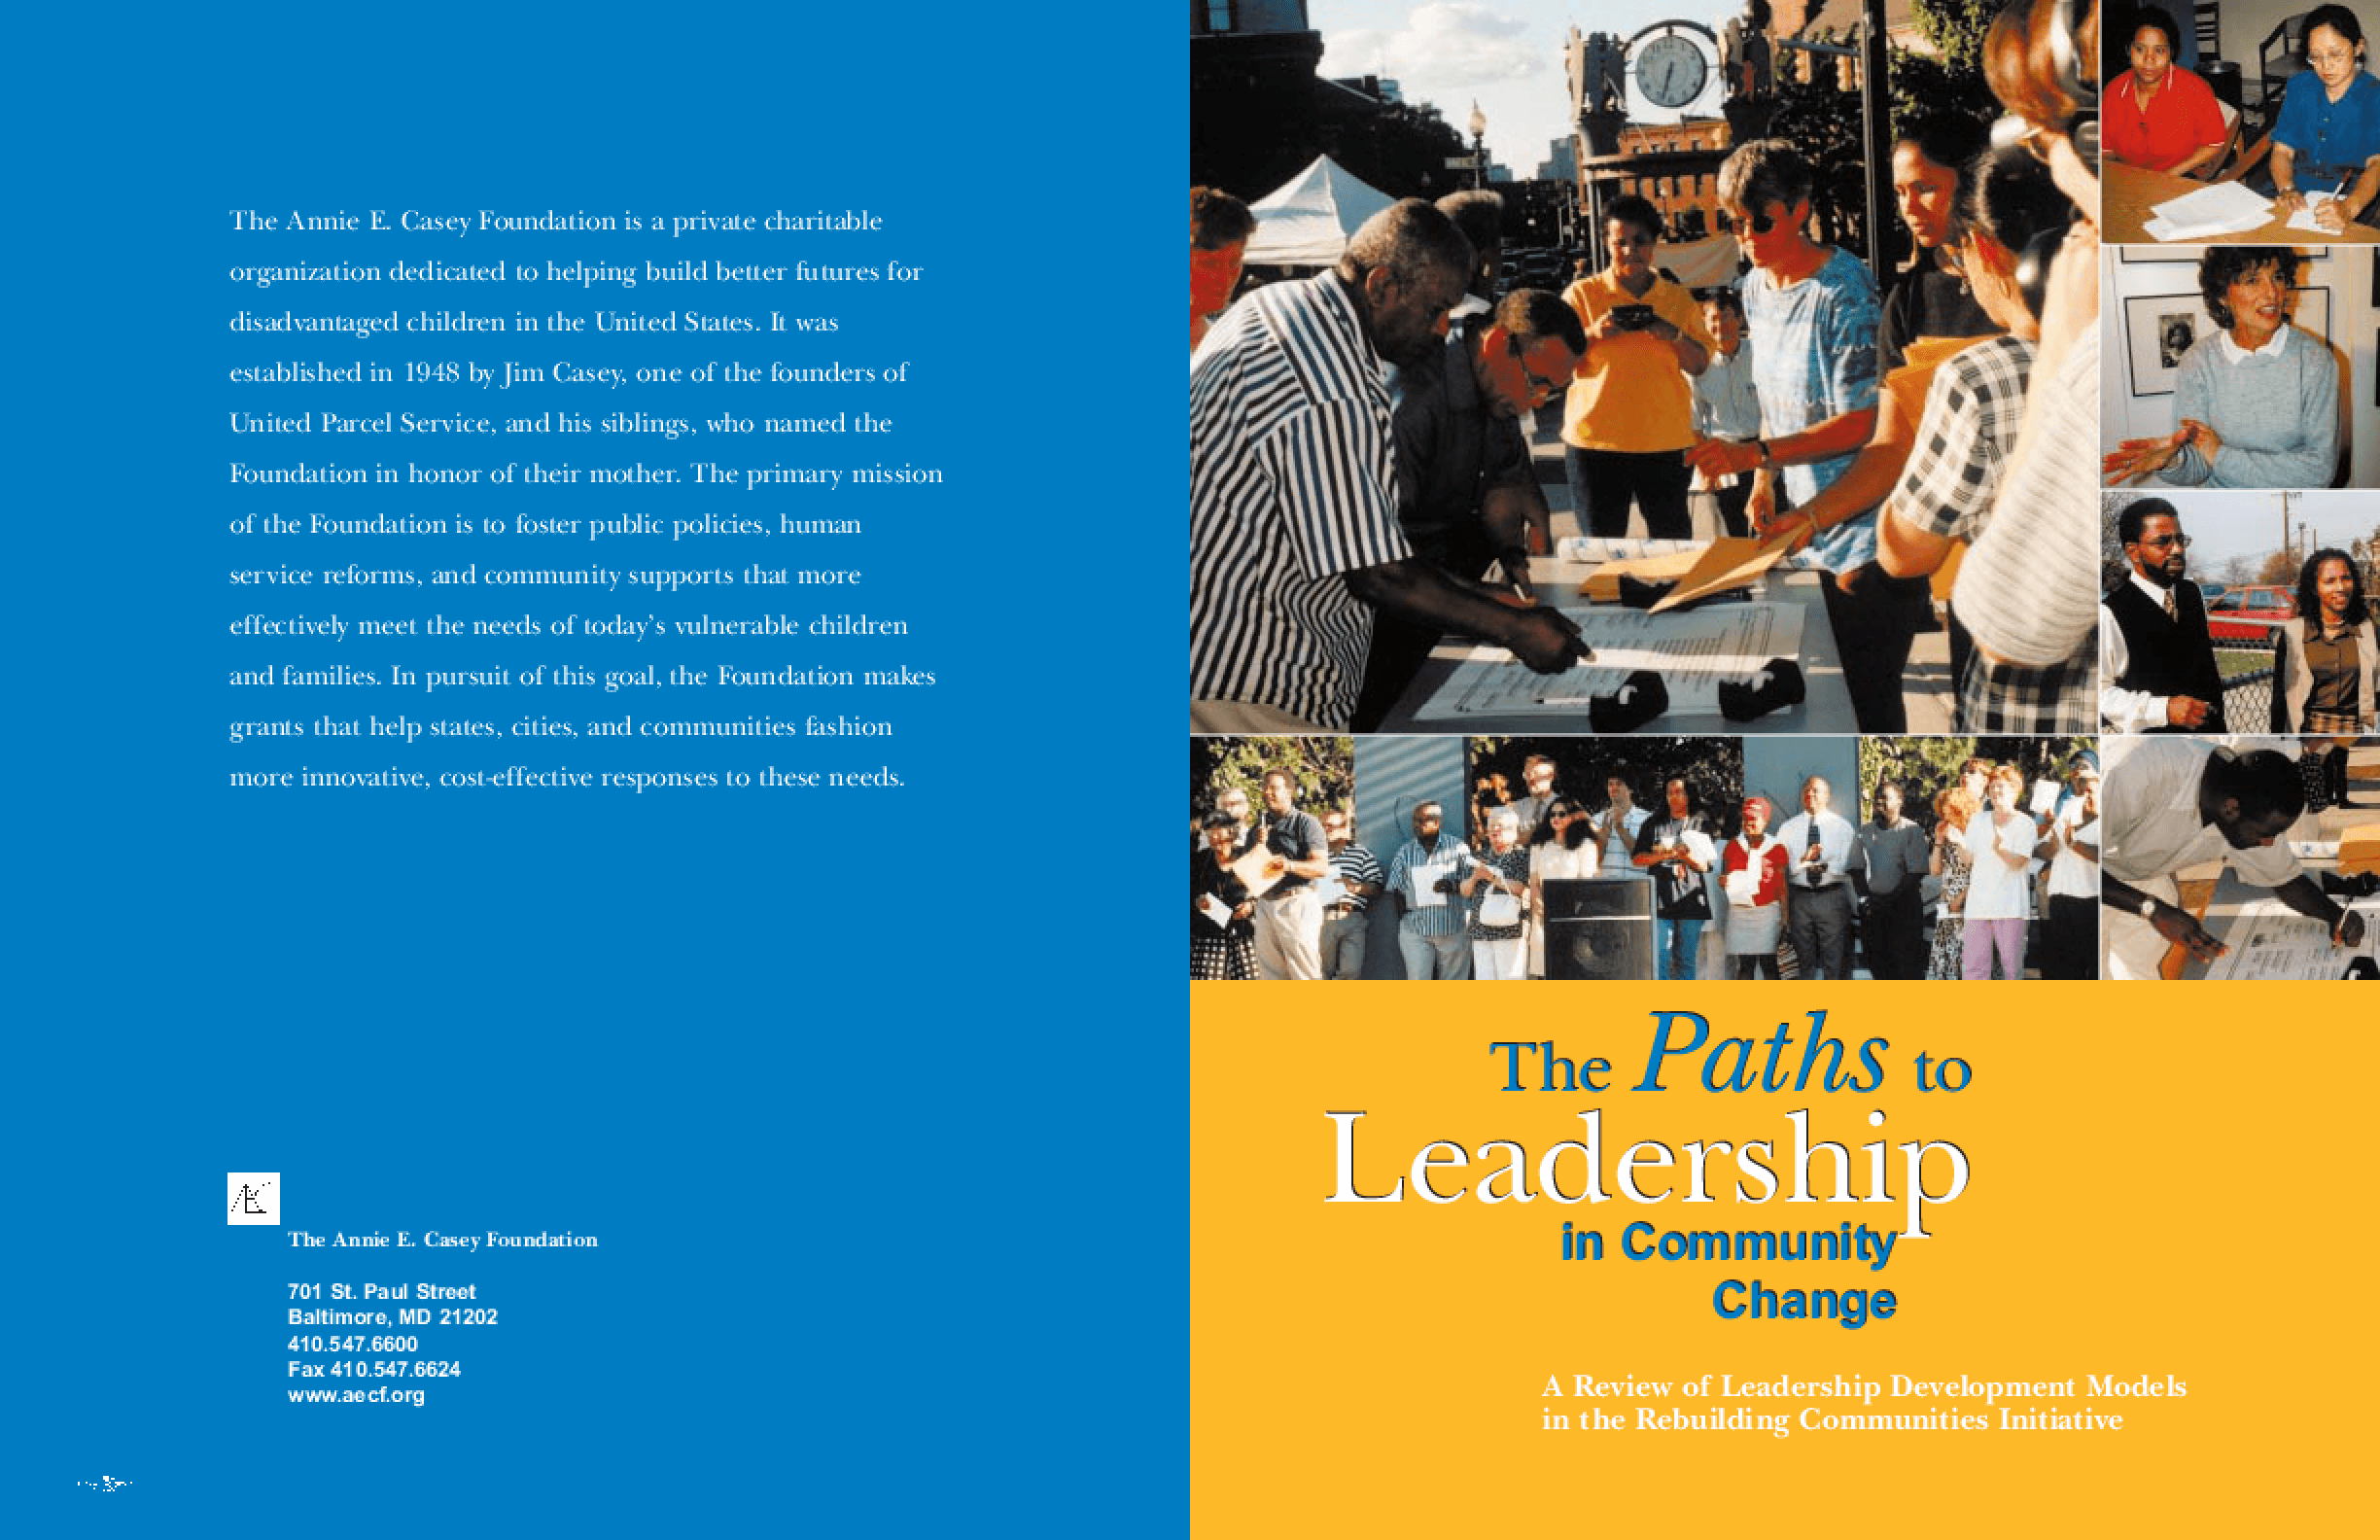 The Paths to Leadership in Community Change: A Review of Leadership Development Models in the Rebuilding Communities Initiative